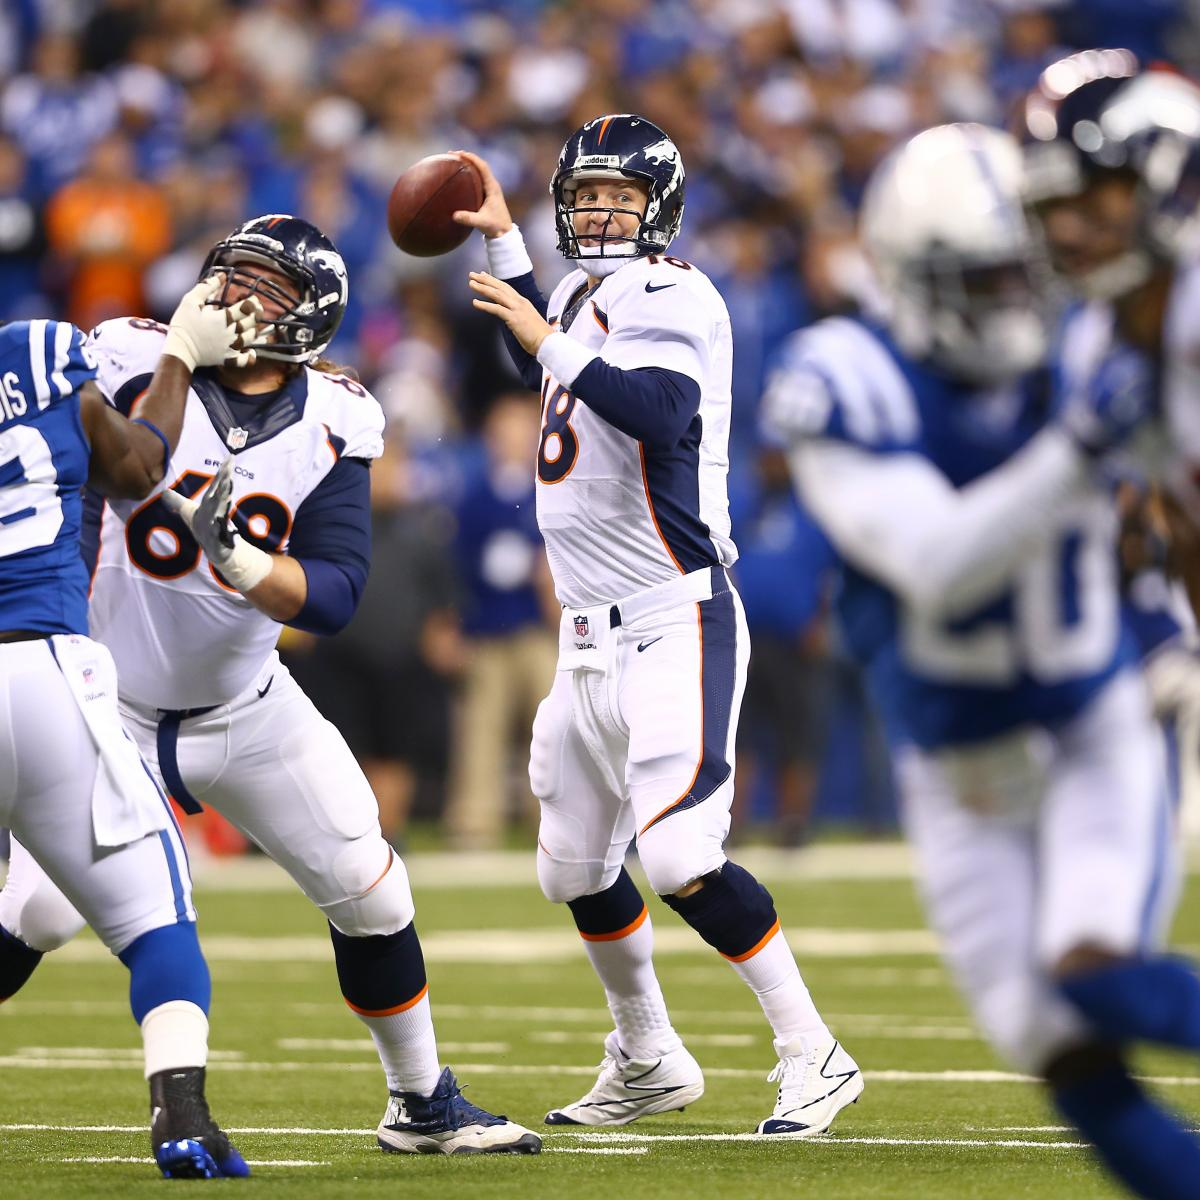 Colts Vs. Broncos: Live Score And Analysis For Denver